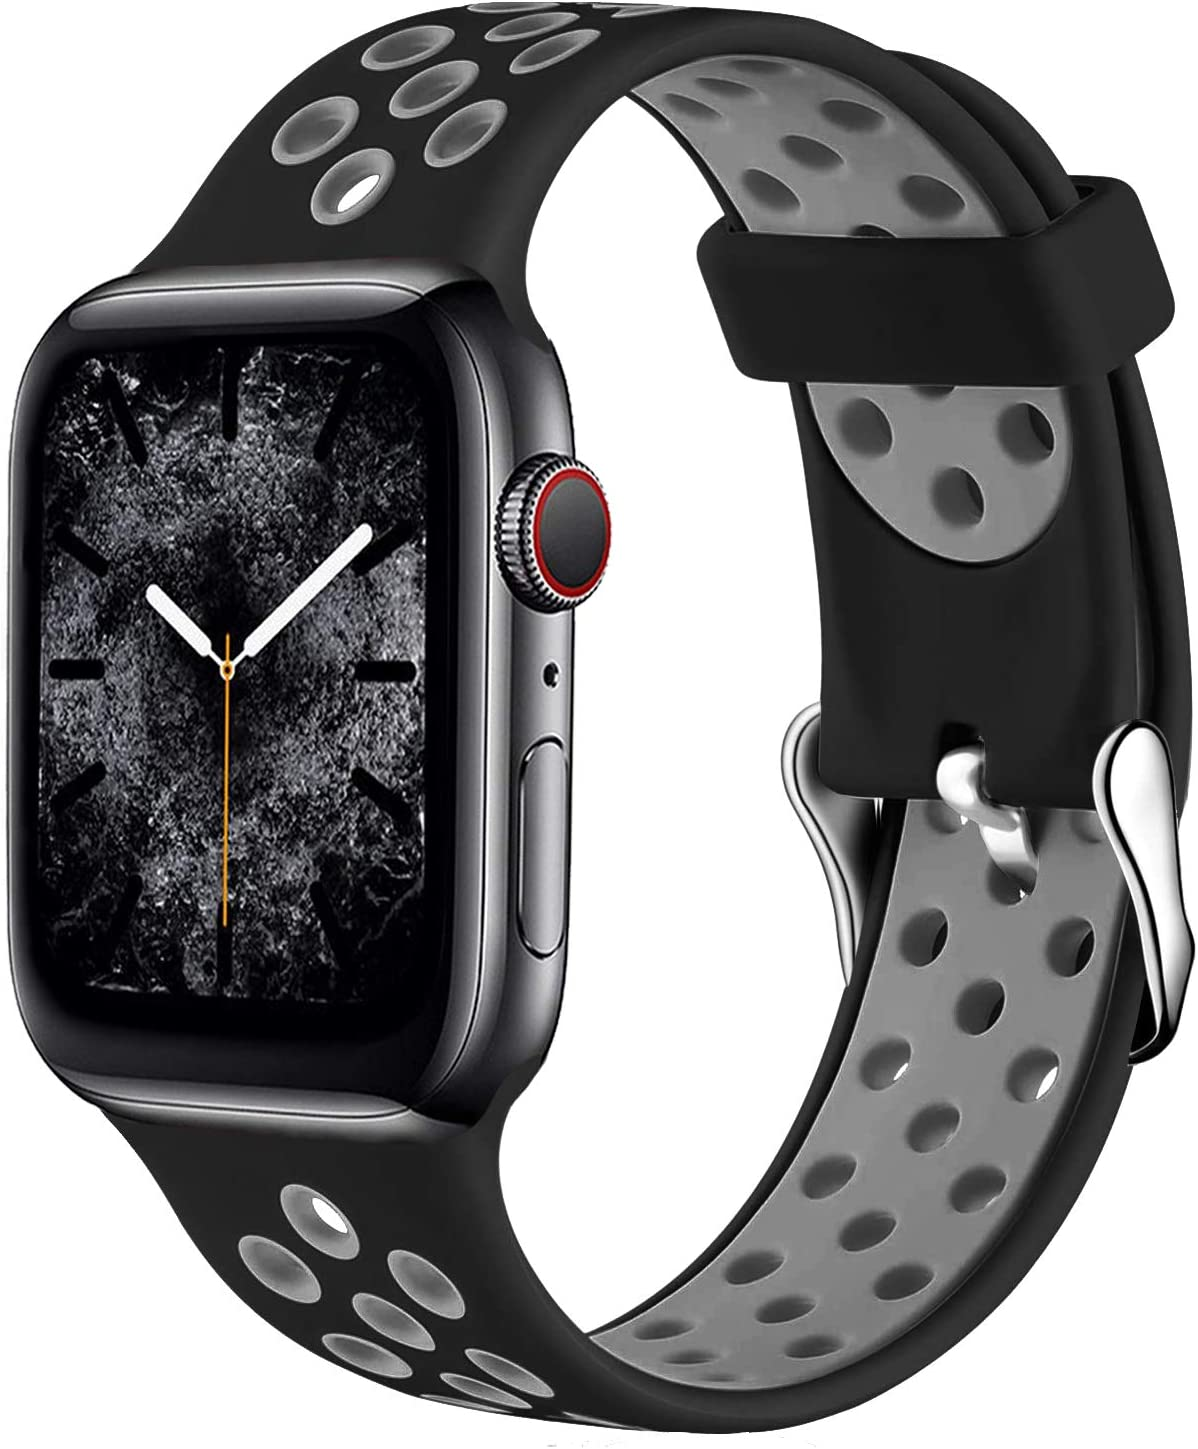 Band4u Compatible with Apple Watch Bands 44mm 42mm 40mm 38mm, Soft Silicone Sport Band Replacement Strap with Classic Clasp for iWatch Series SE 6 5 4 3 2 1 for Women Men